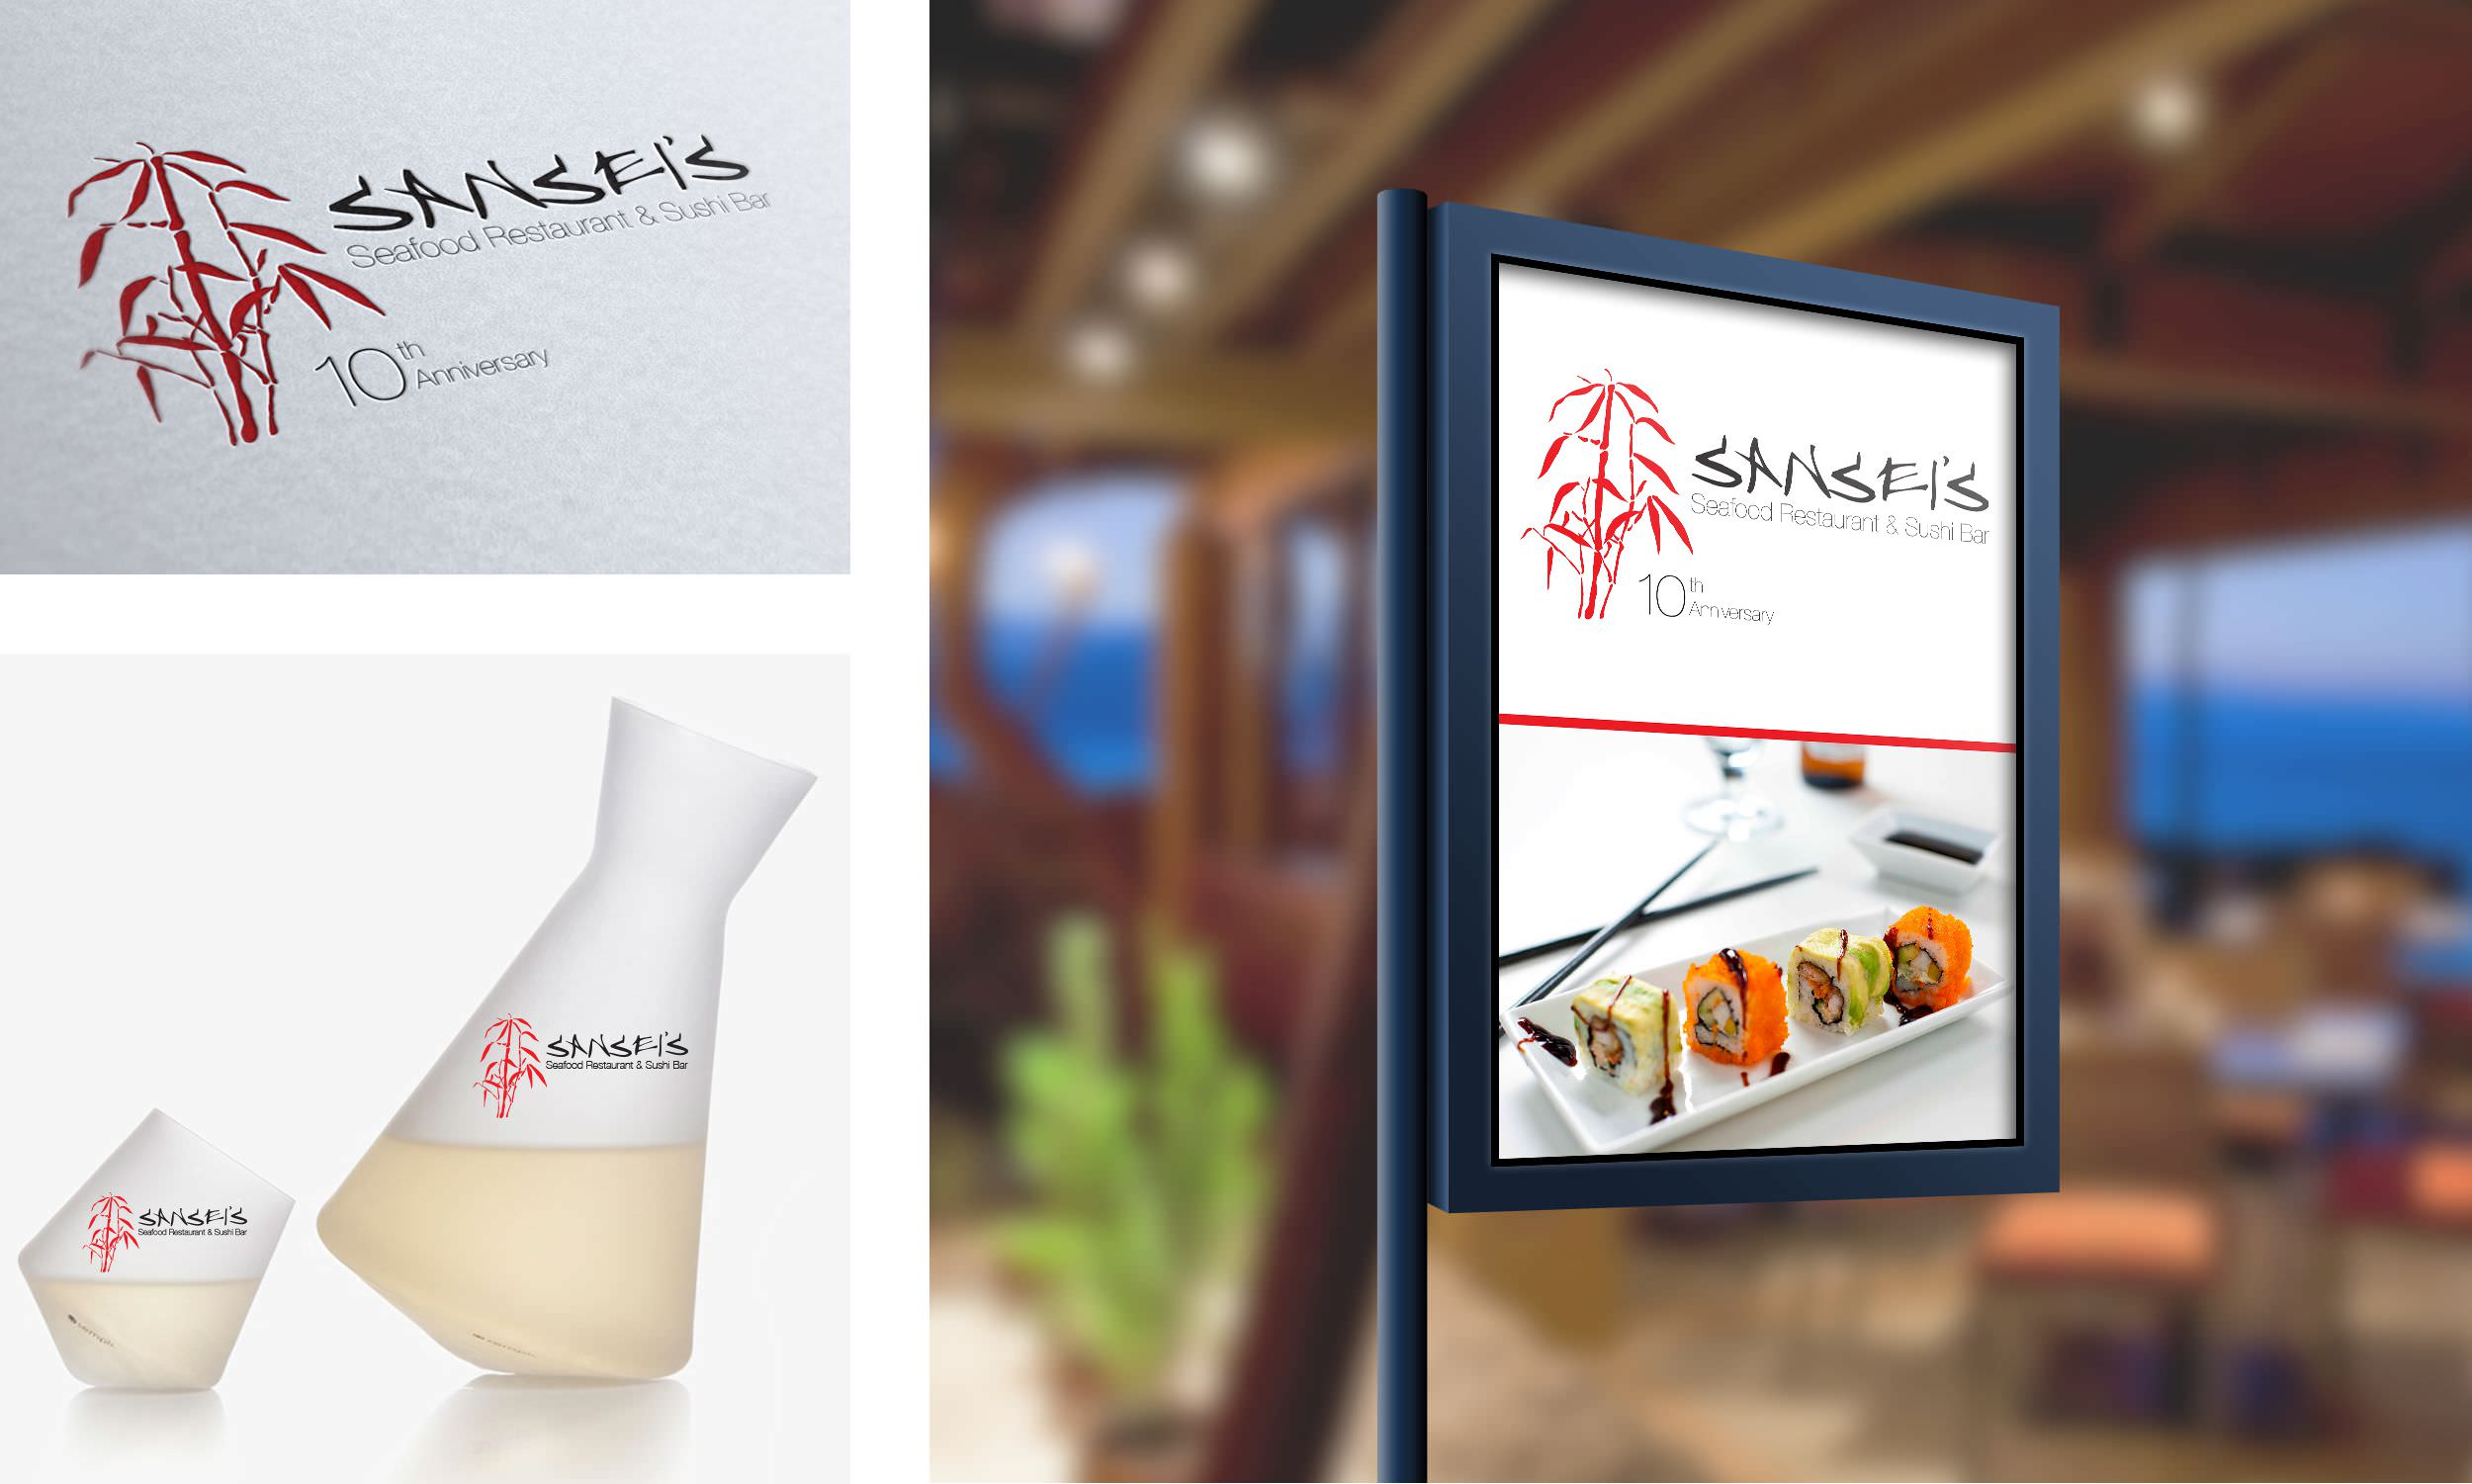 Sansei Logo, Usage, and Signage